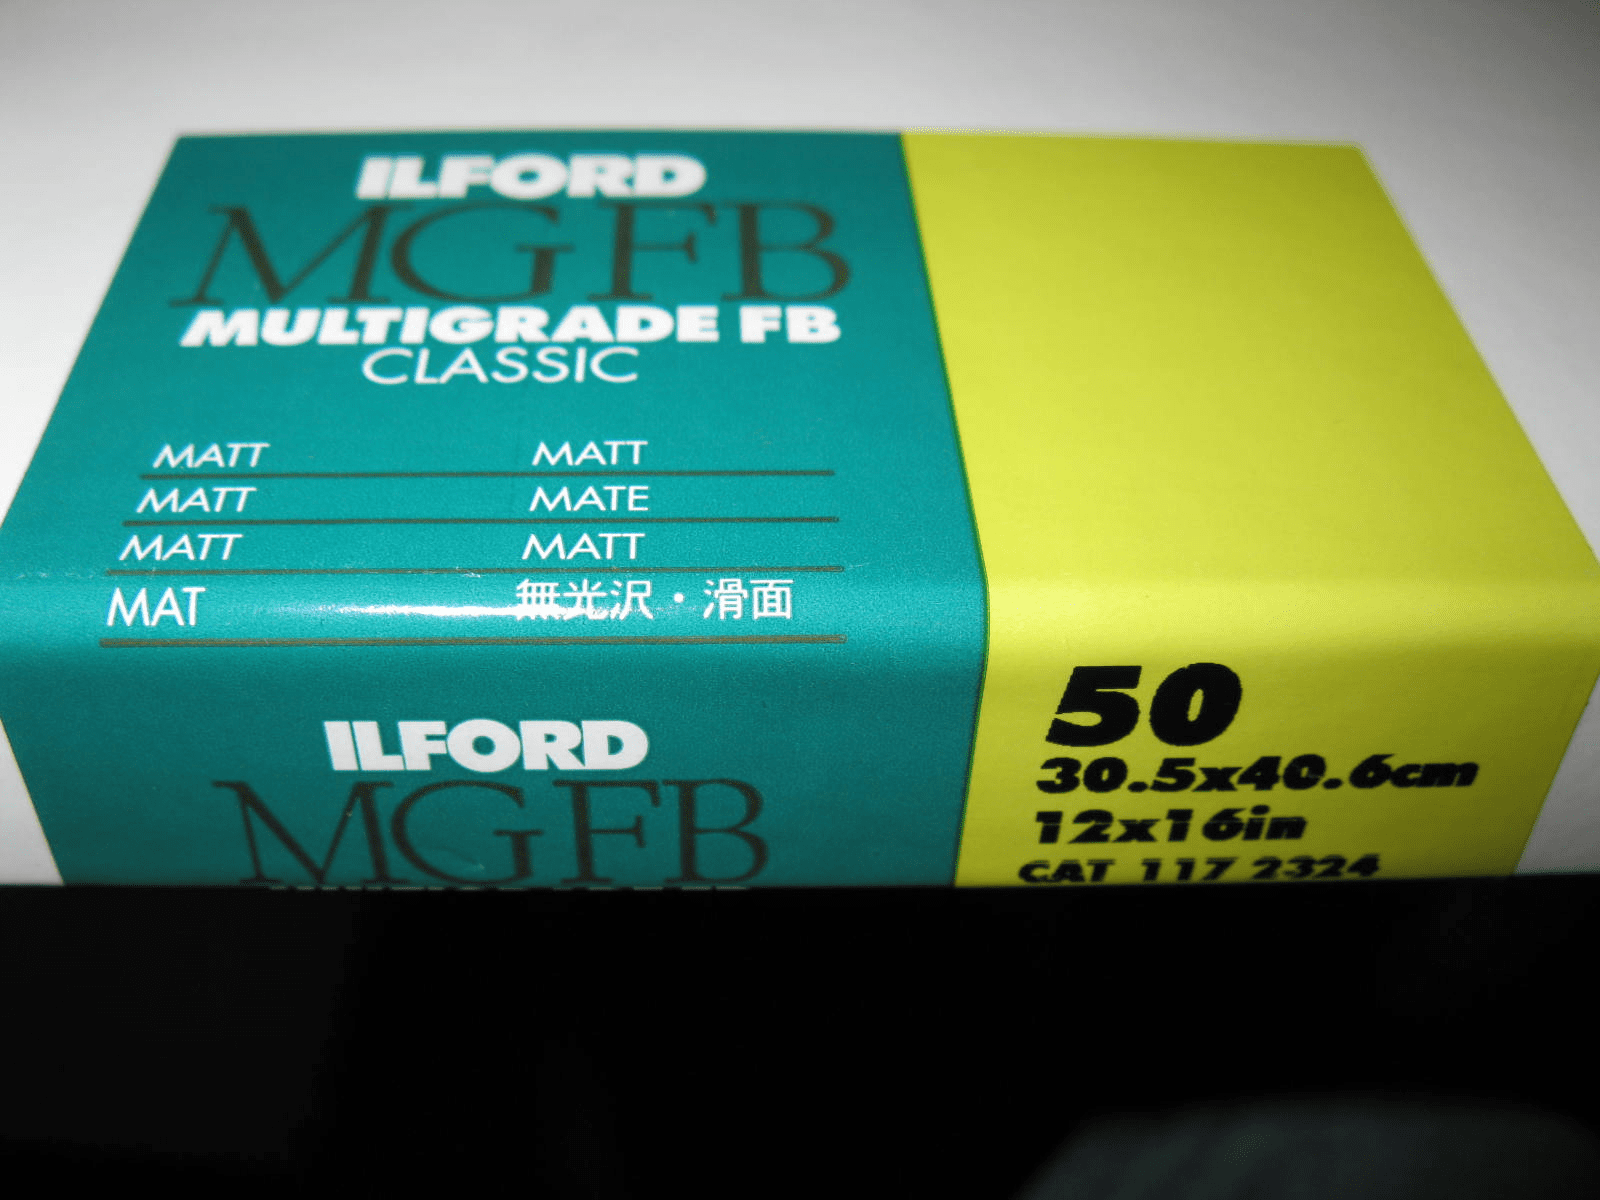 Ilford MGFB Multigrade FB Classic 12x16 50 Sheets Matt